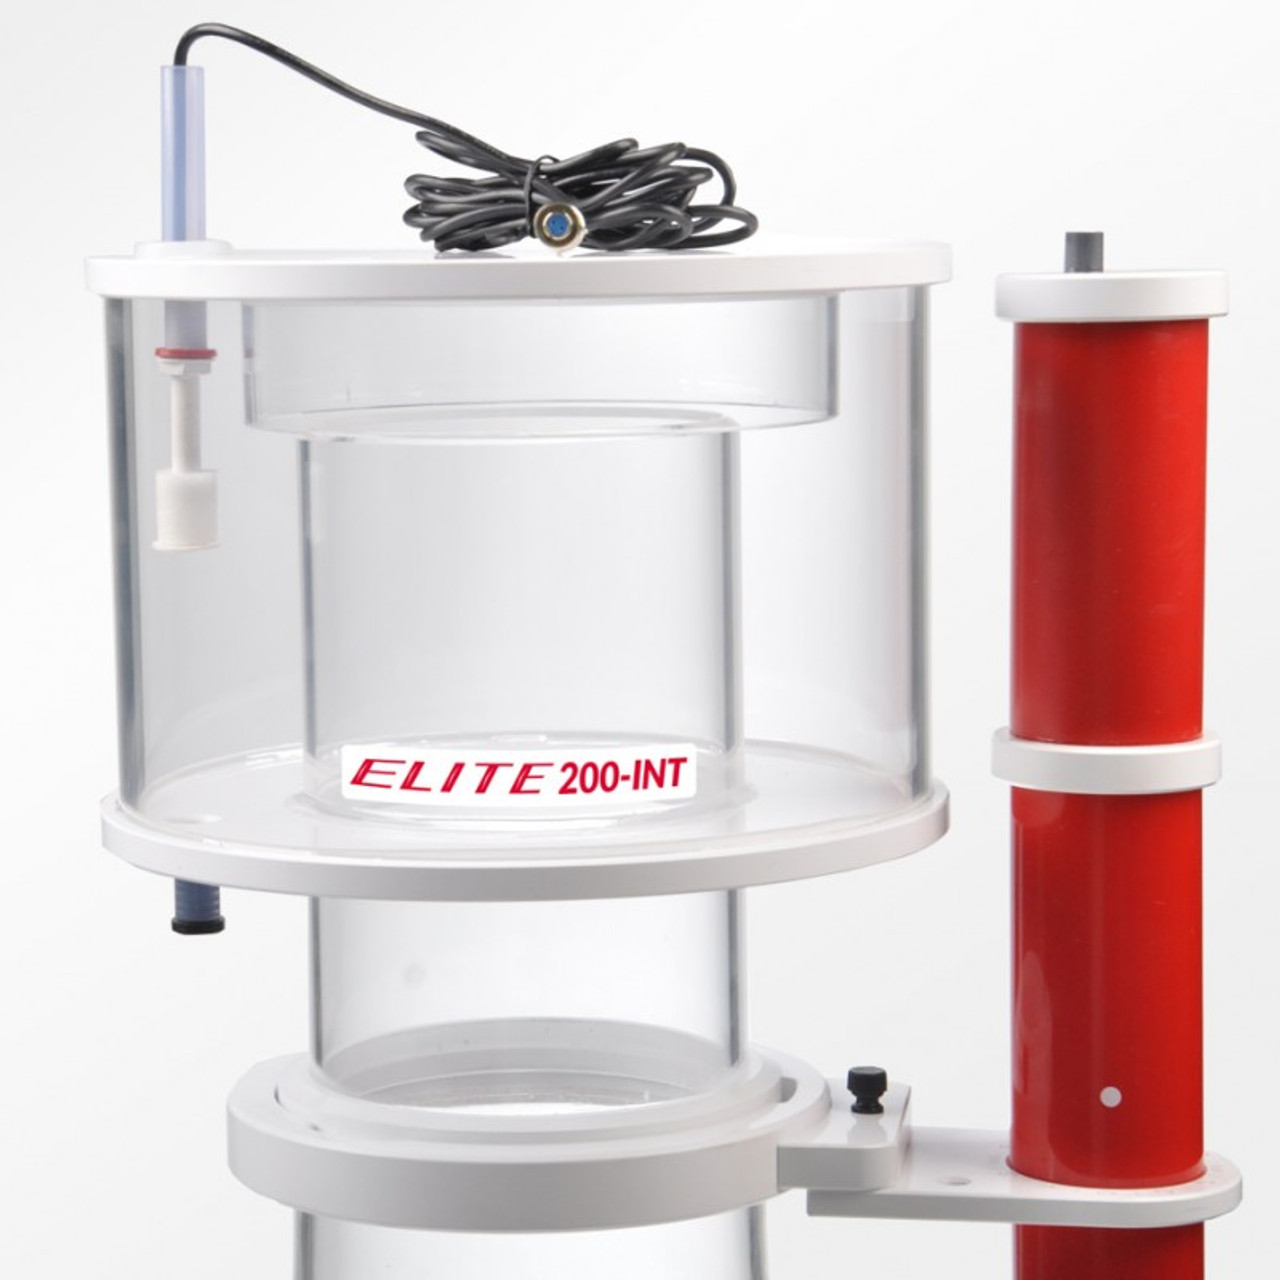 Reef Octopus Elite 220INT Super Cone Protein Skimmer